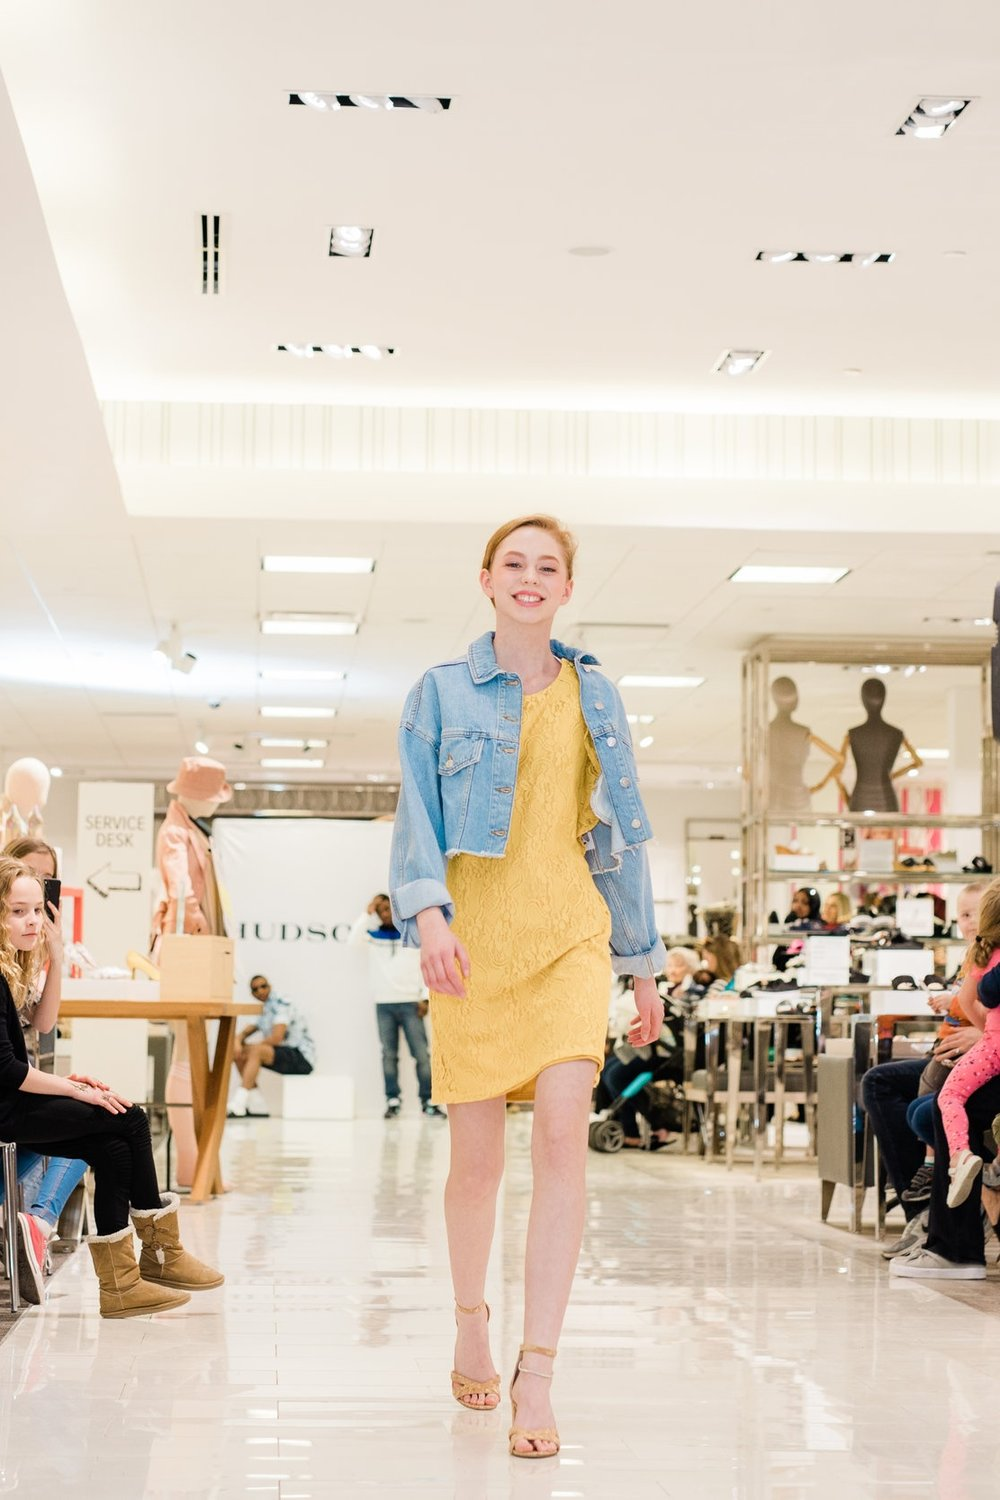 No.01 Yellow - This yellow dress by Molly Bracken with a denim jacket can easily make this look more casual, but without it- you can rock it with an eye catching pair of Cork sandals too!